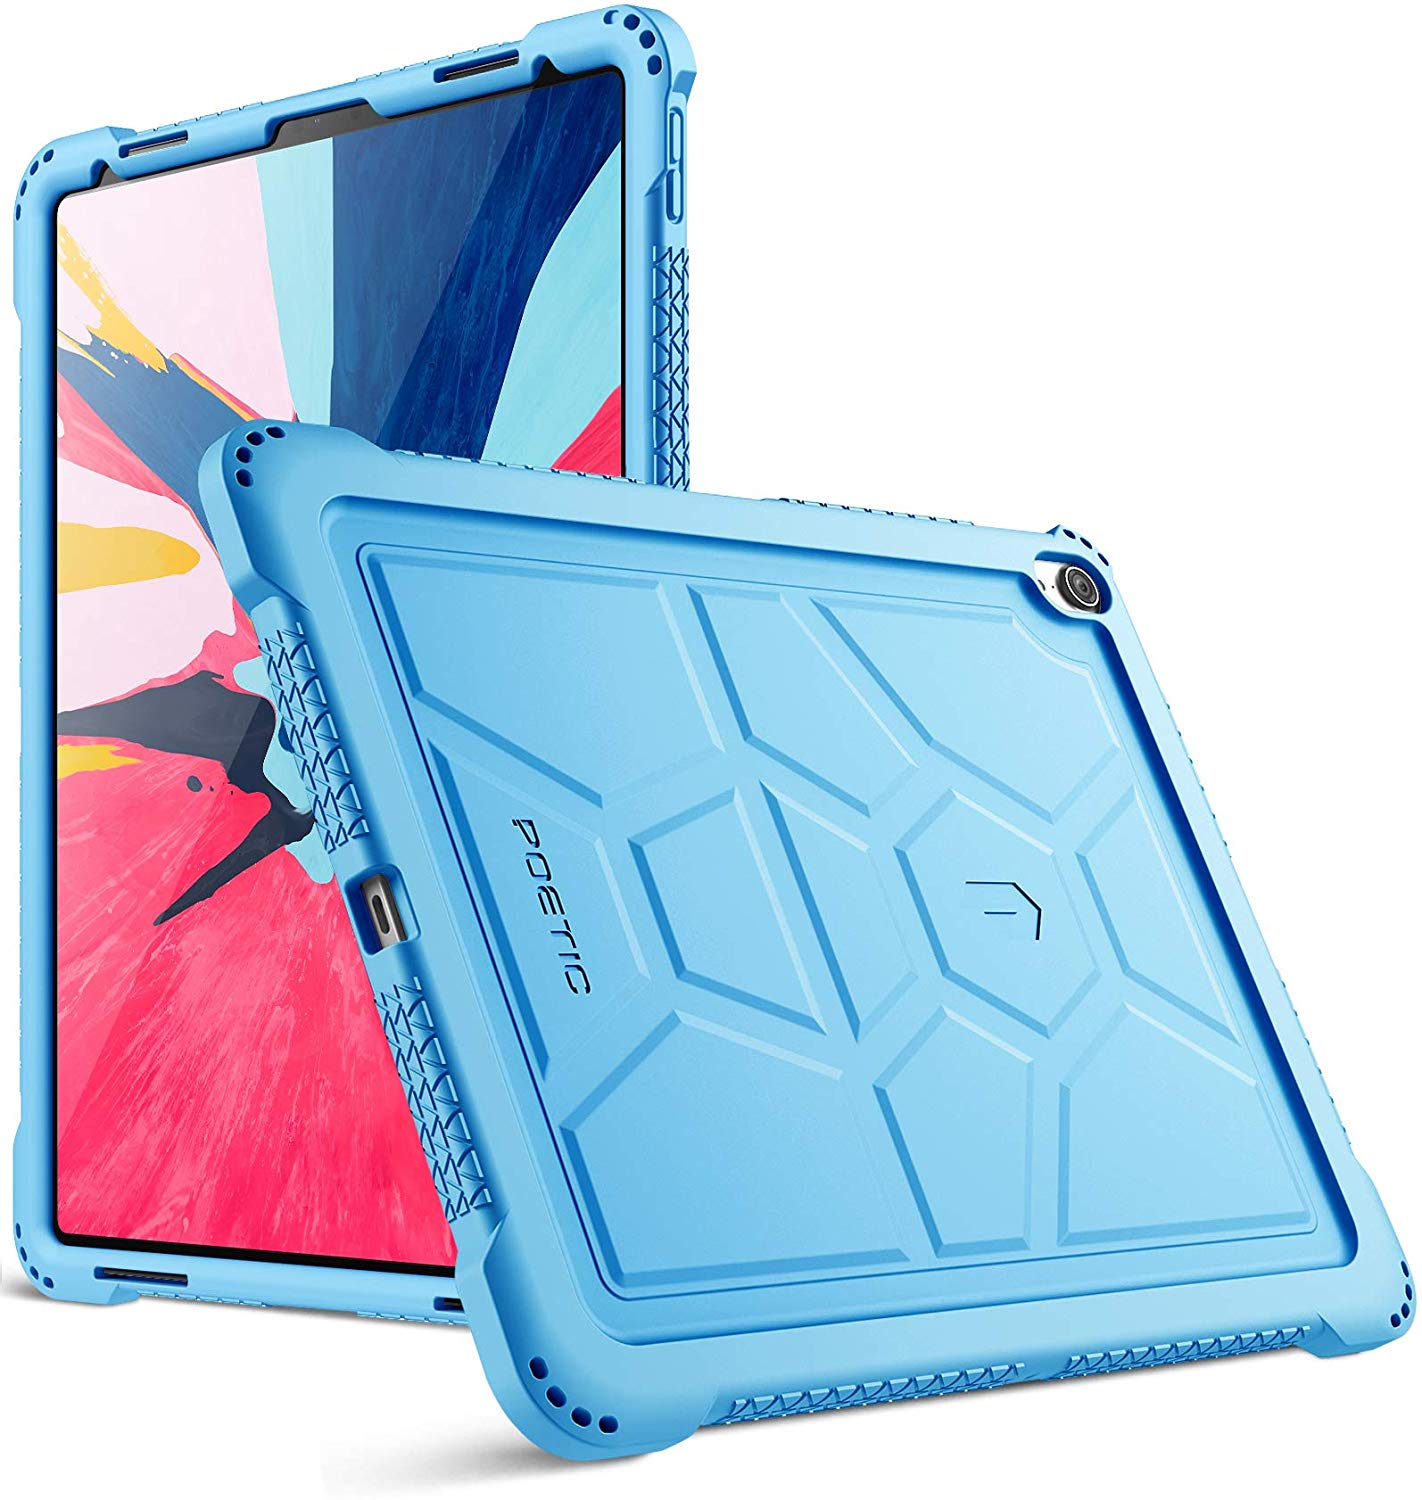 Colorful rugged case for iPad Pro 2018